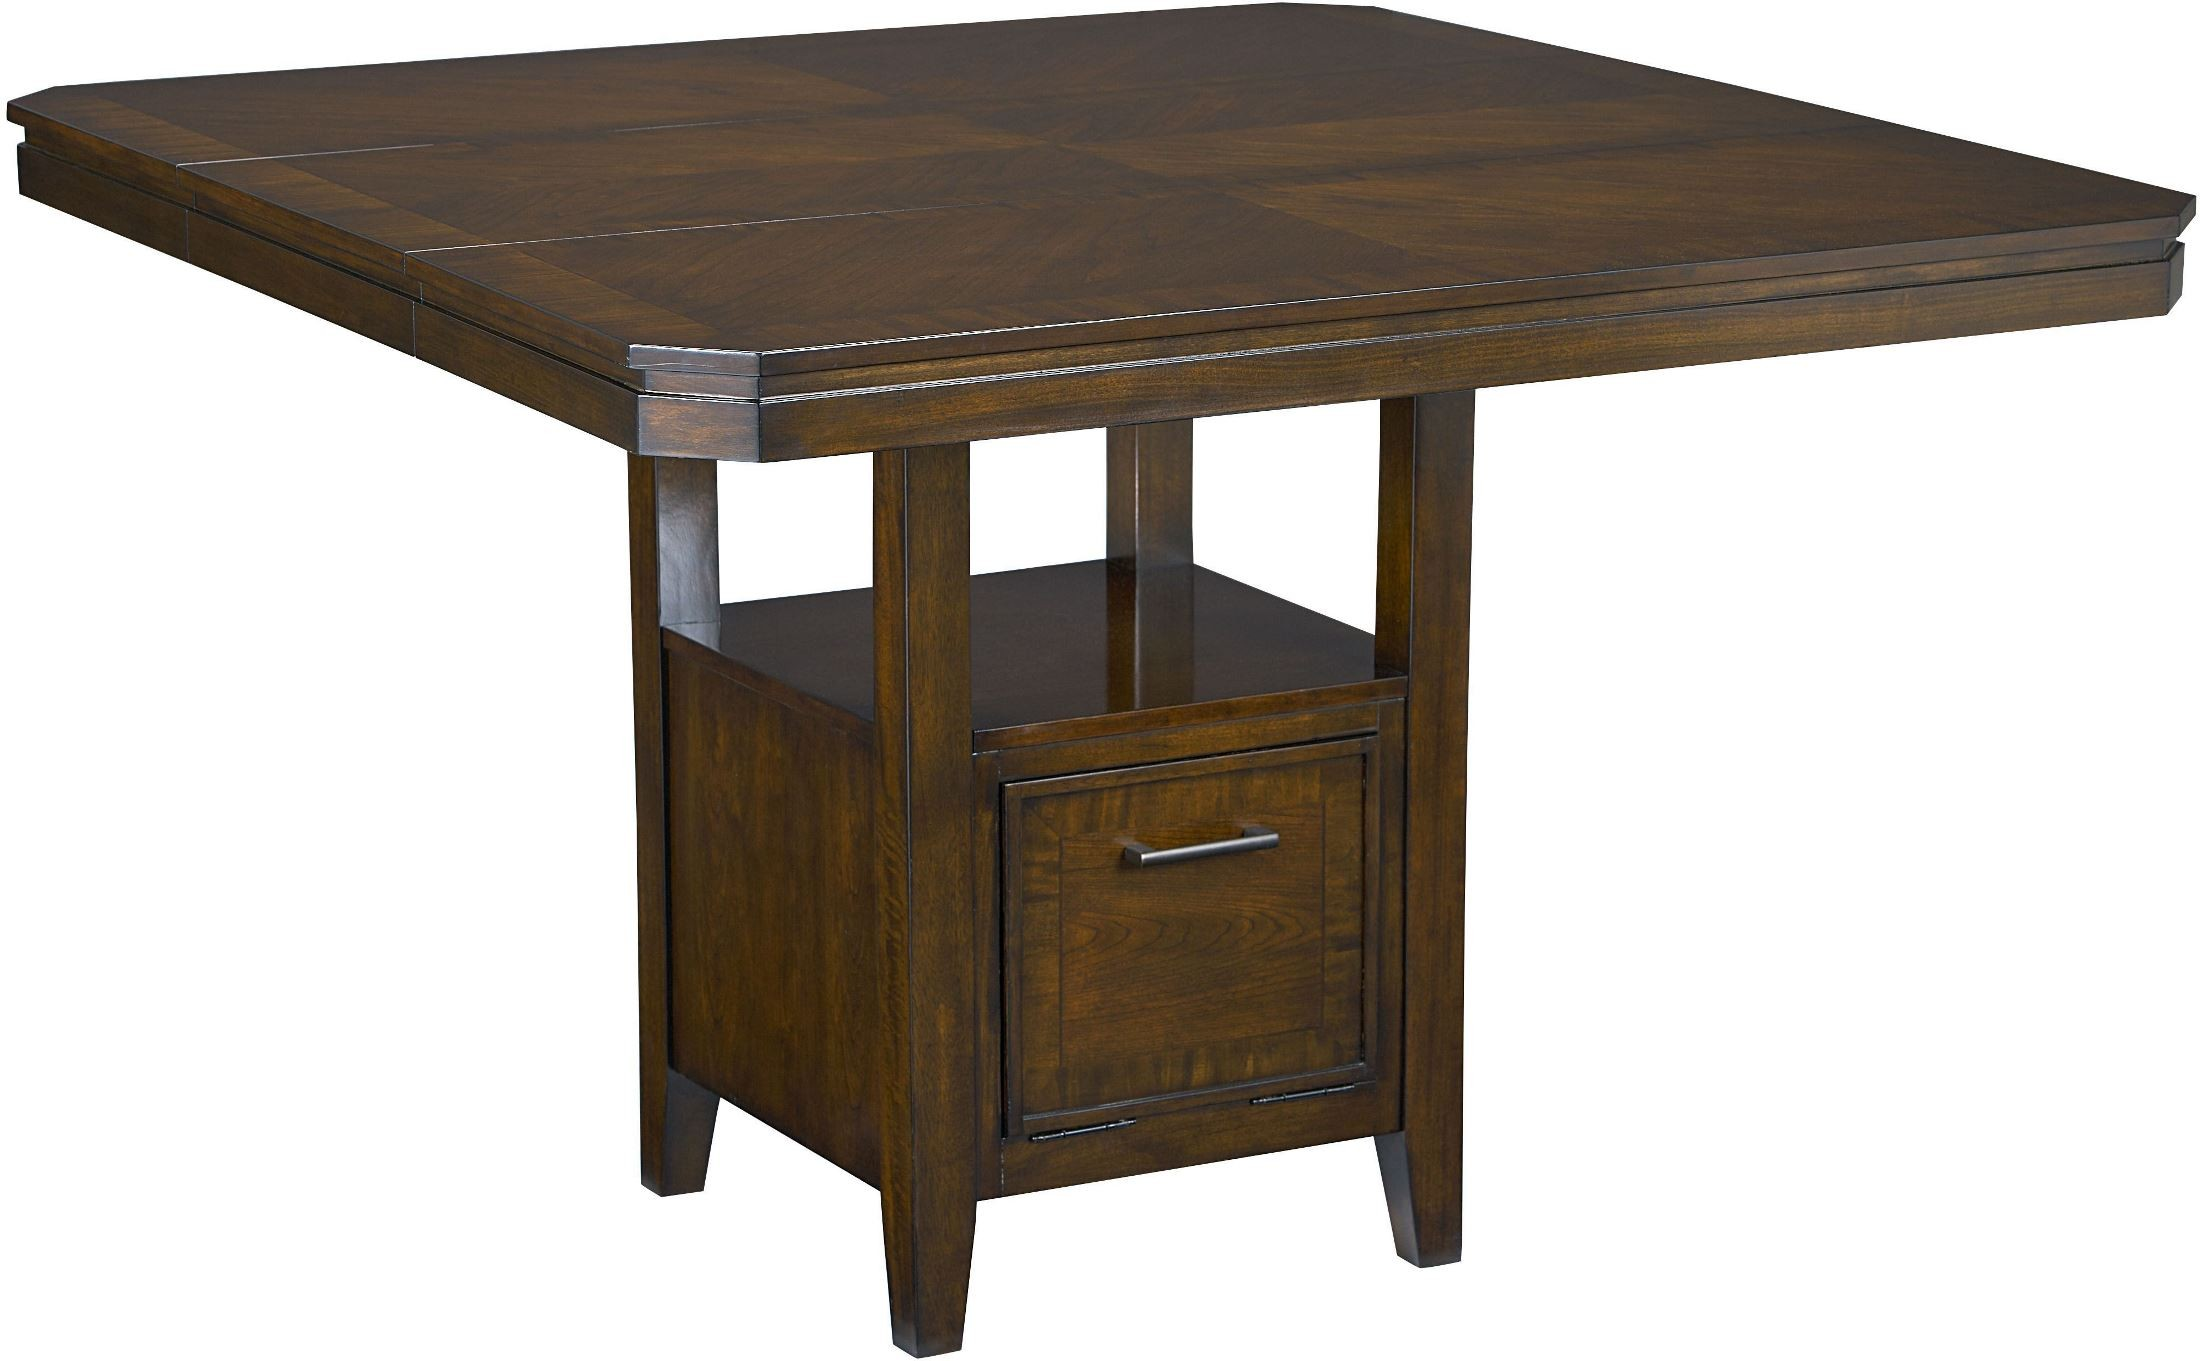 Avion walnut counter height dining table 17836 standard for Standard dining table